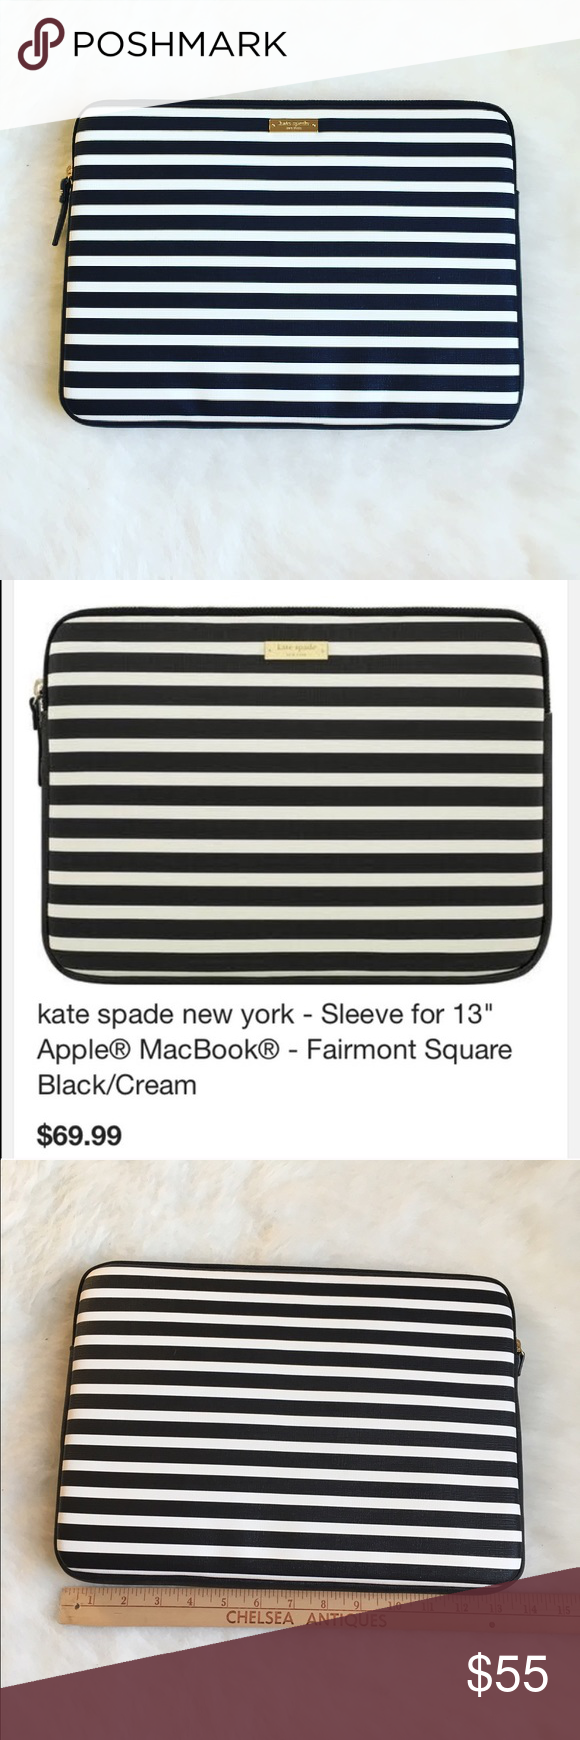 """Kate Spade laptop sleeve Shield your 13"""" Apple MacBook/MacBook Pro against scratches and scuffs with this kate spade new york KSMB-012-FSQBC sleeve, which features stylish kate spade new york designs on durable vinyl material. The gold zipper closure adds a touch of style.🖤BRAND NEW NEVER USED🖤🚫NO TRADES LOW BALL OFFERS GET BLOCK🚫 kate spade Accessories Laptop Cases"""